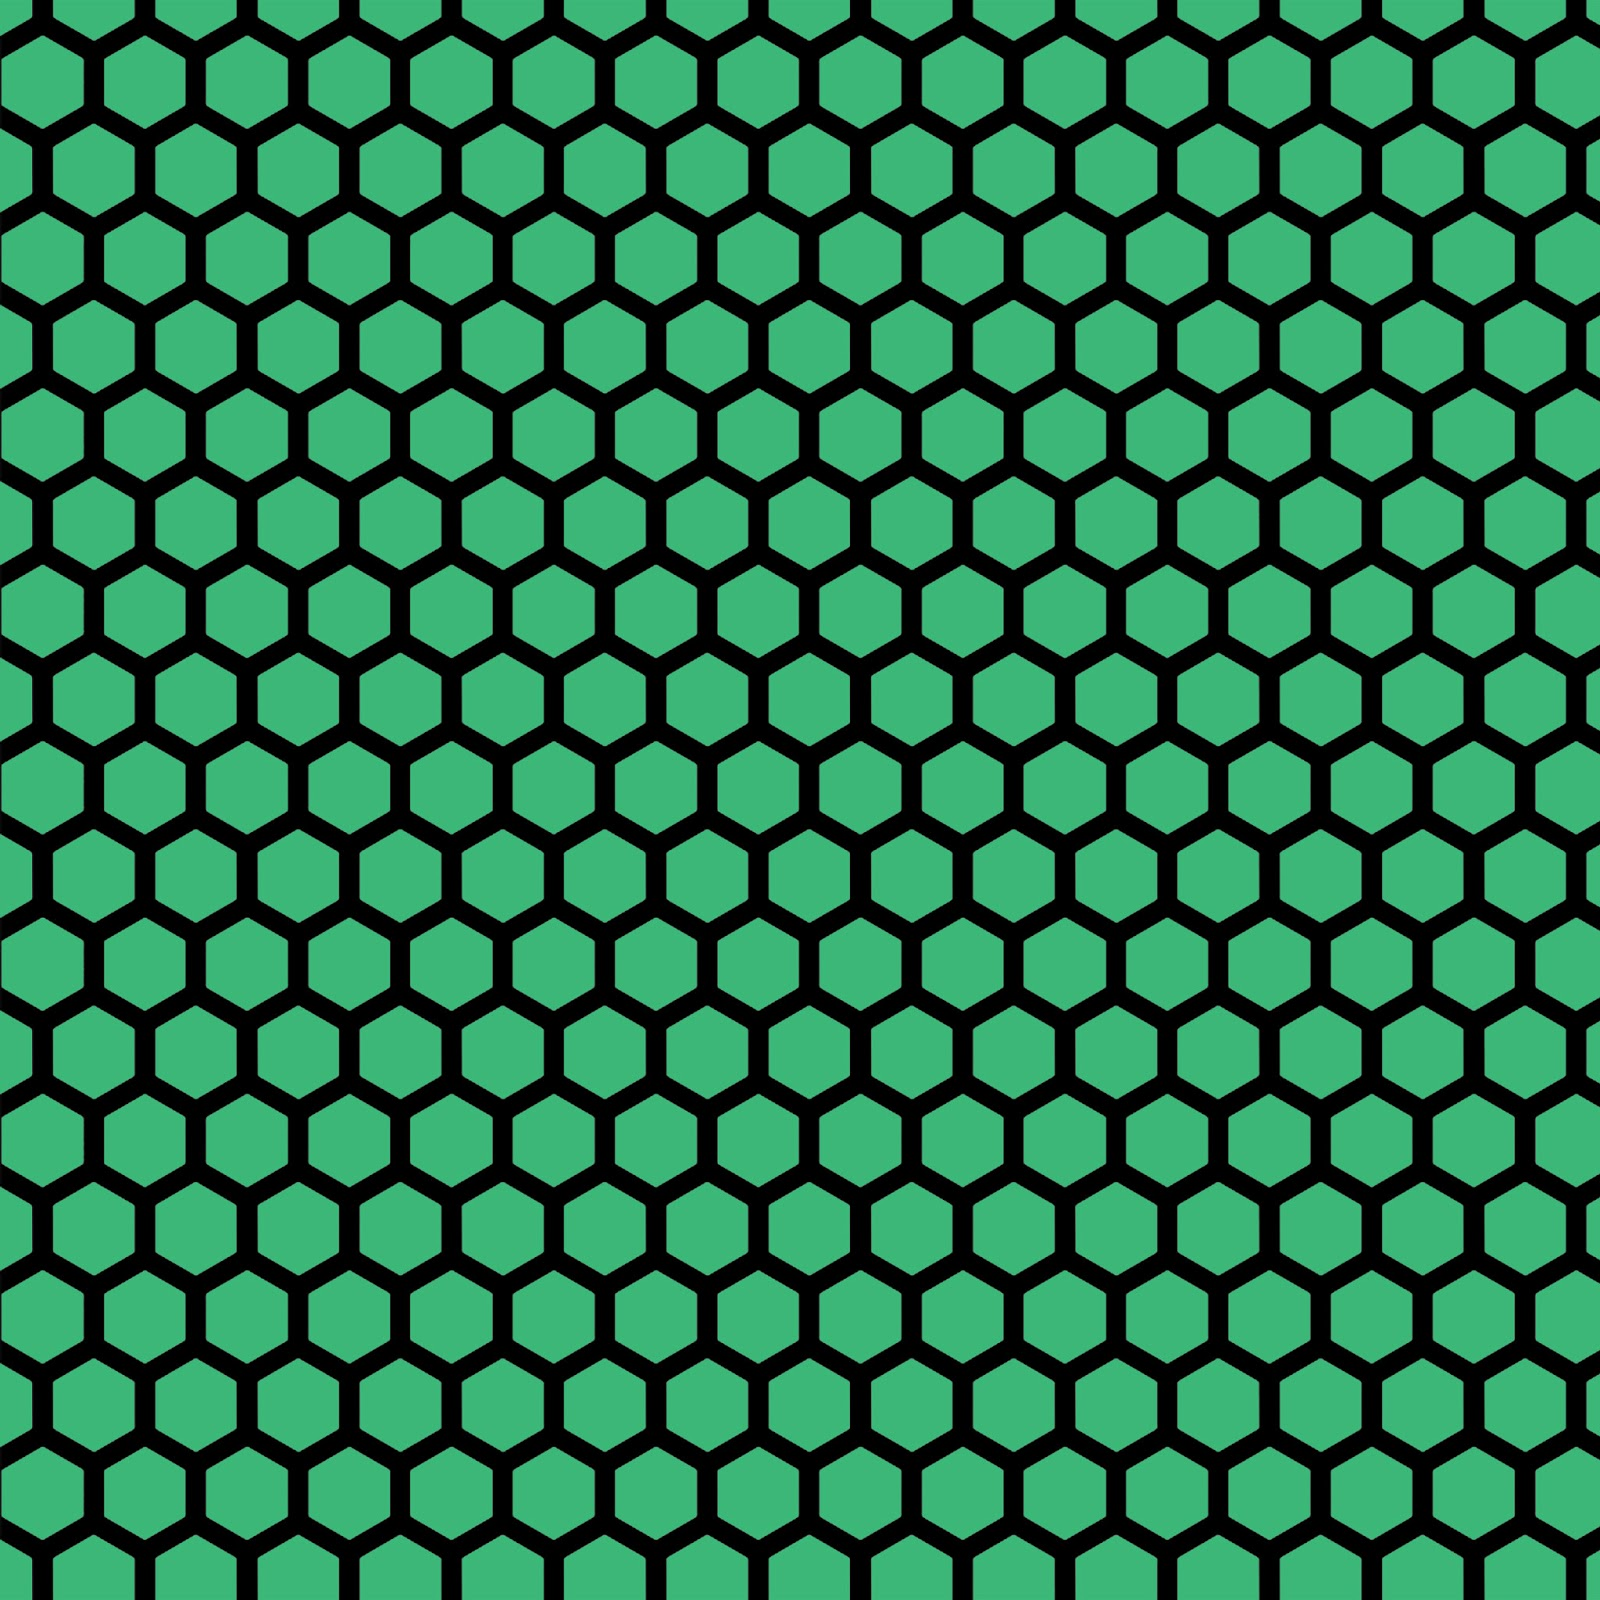 Honeycomb wallpapers background images page 6 - 15 Colorful Hues Hexagon Honeycomb Background Printables